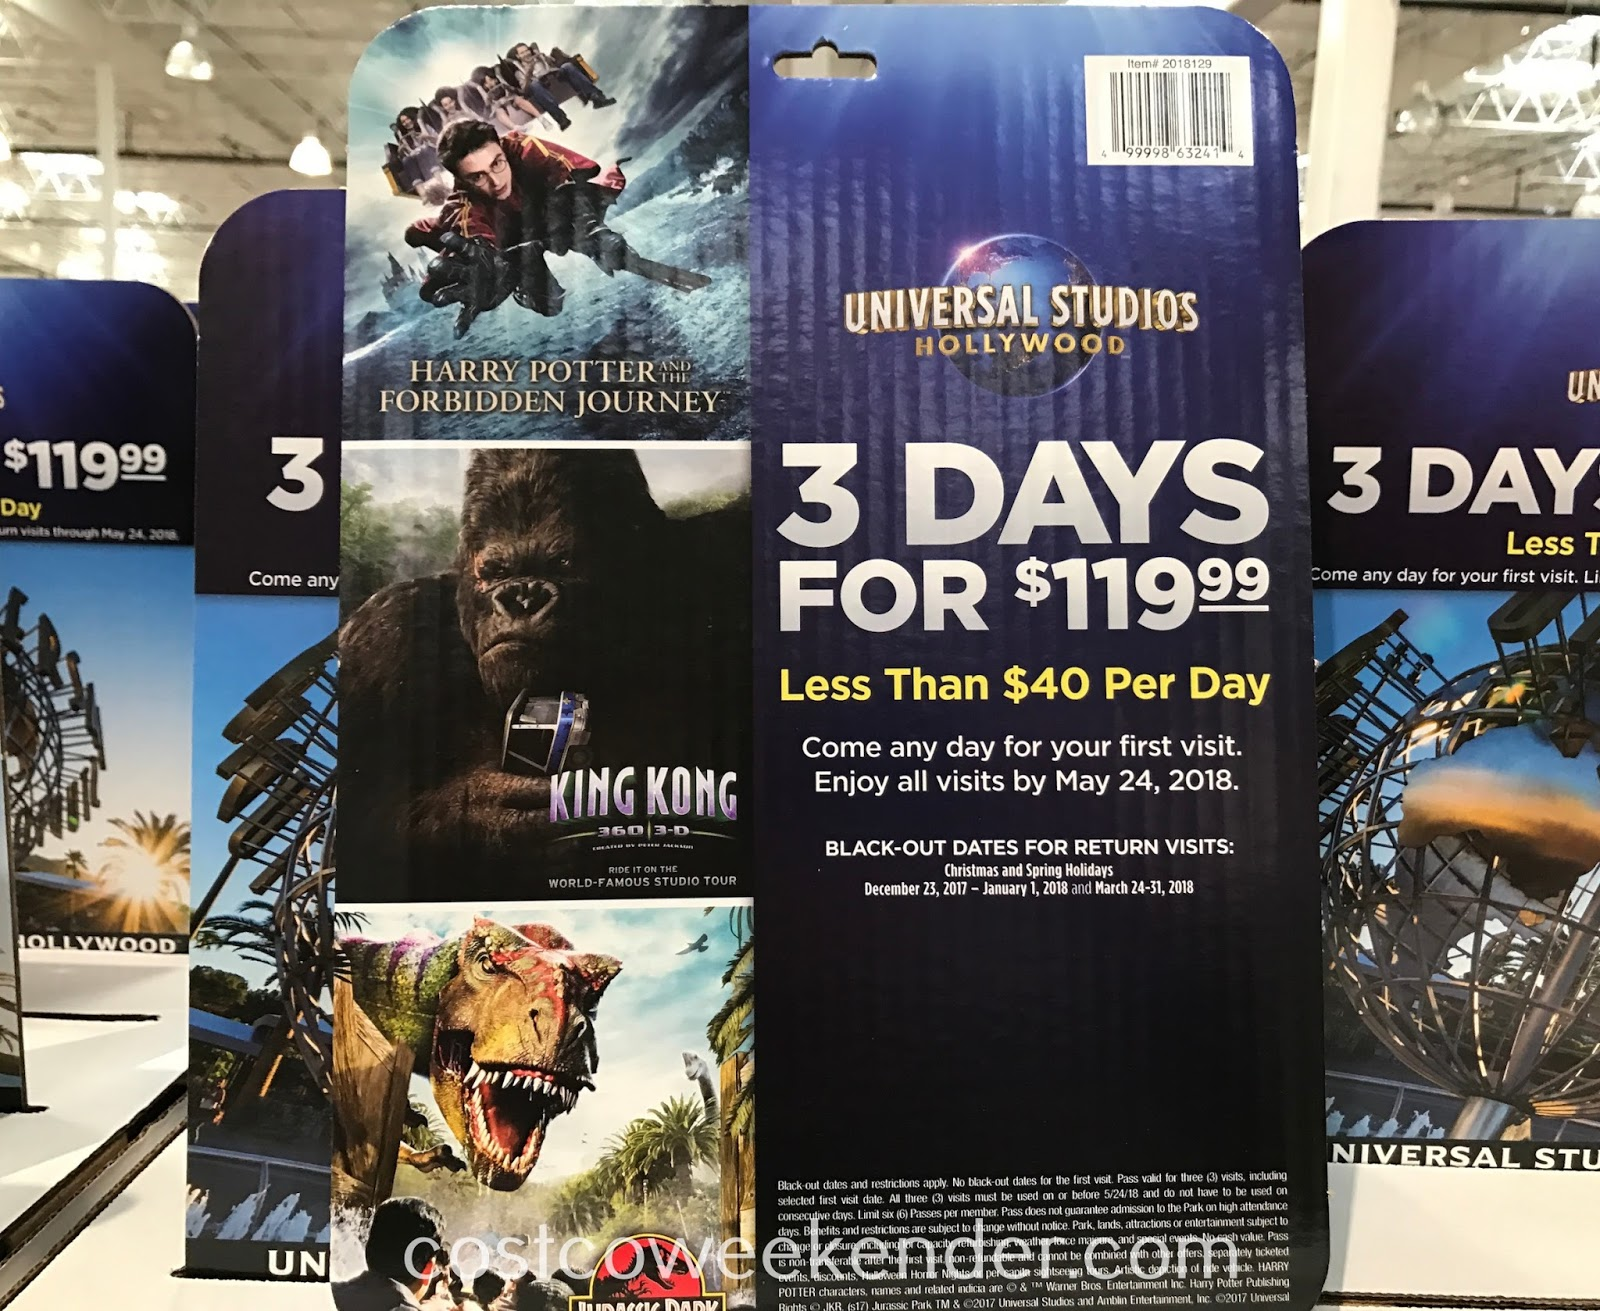 Costco 2018129 - Universal Studios Hollywood 3 Day Ticket: great for the whole family